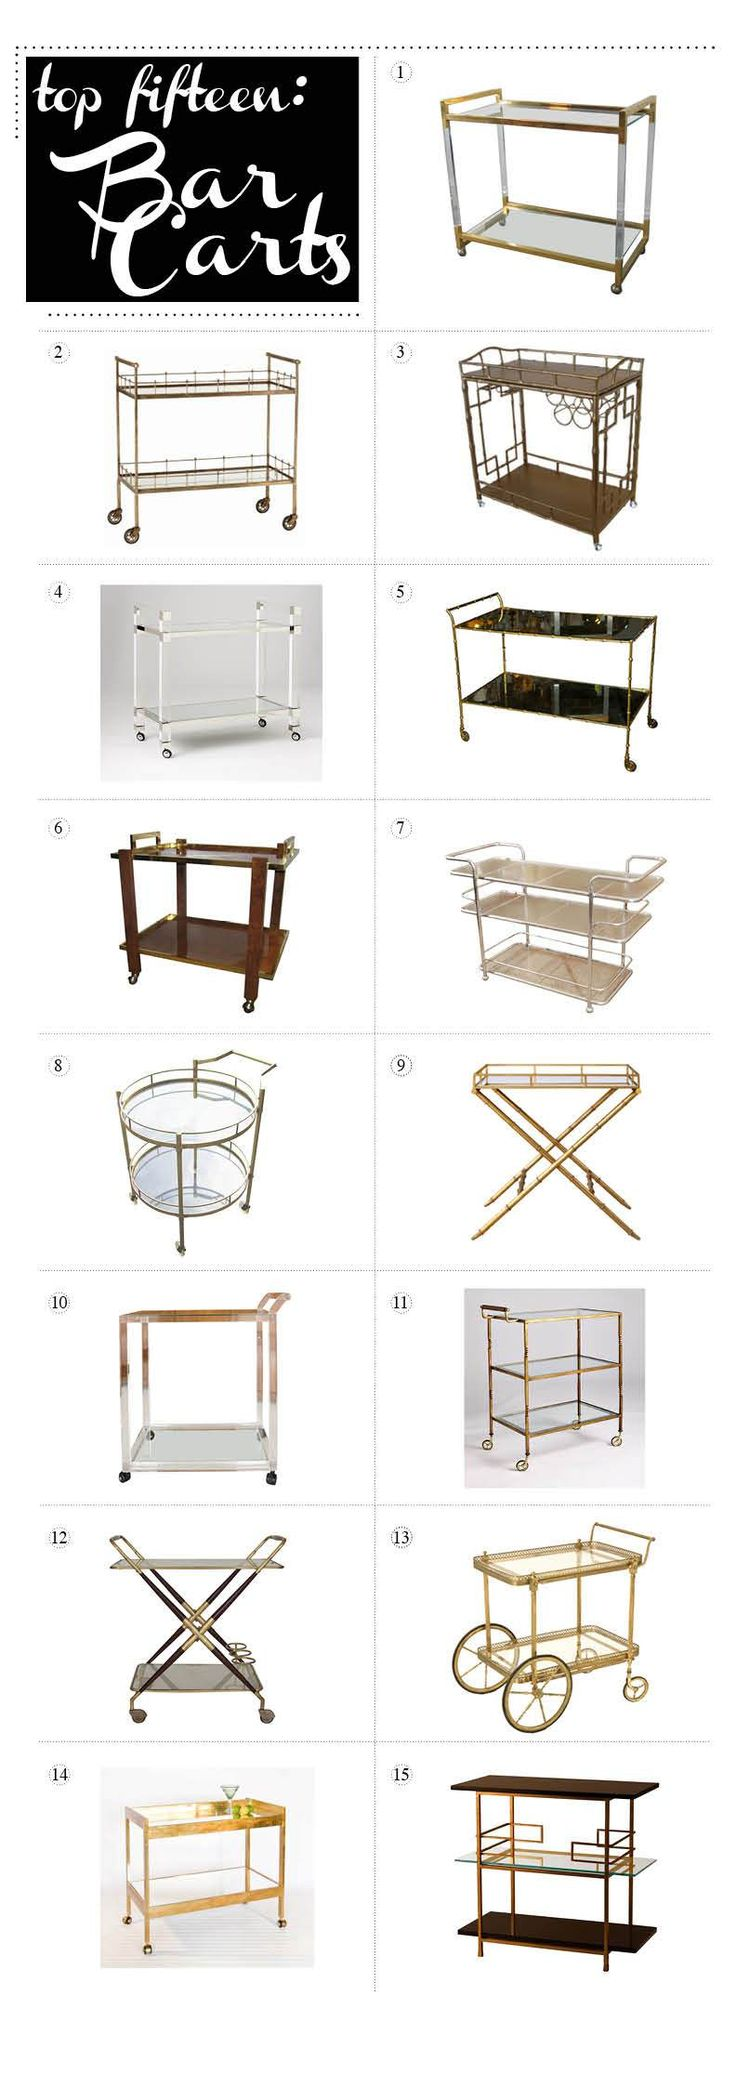 top 15 bar carts